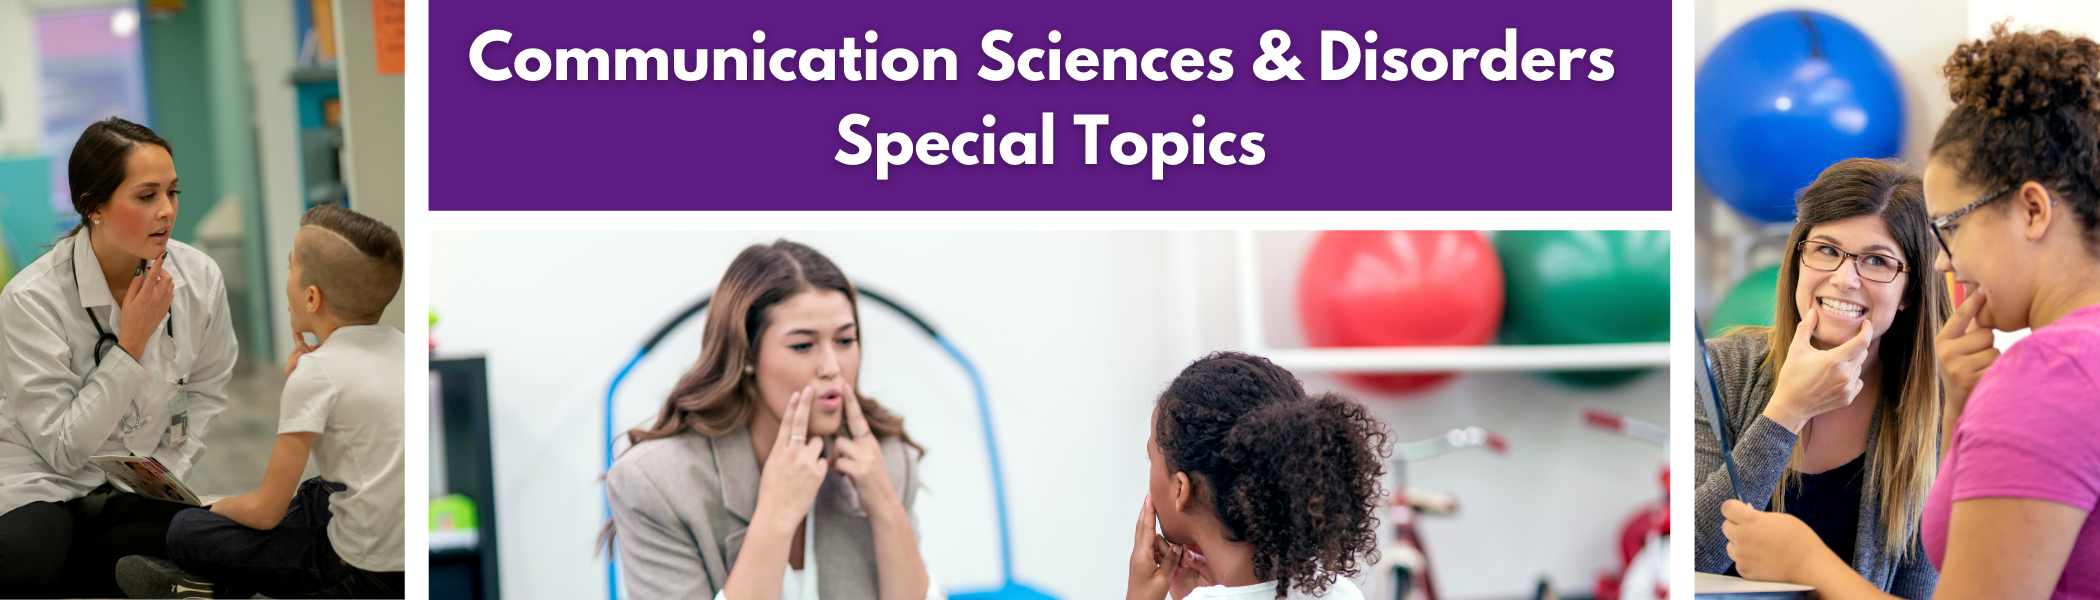 Communication Sciences and Disorders Special Topics